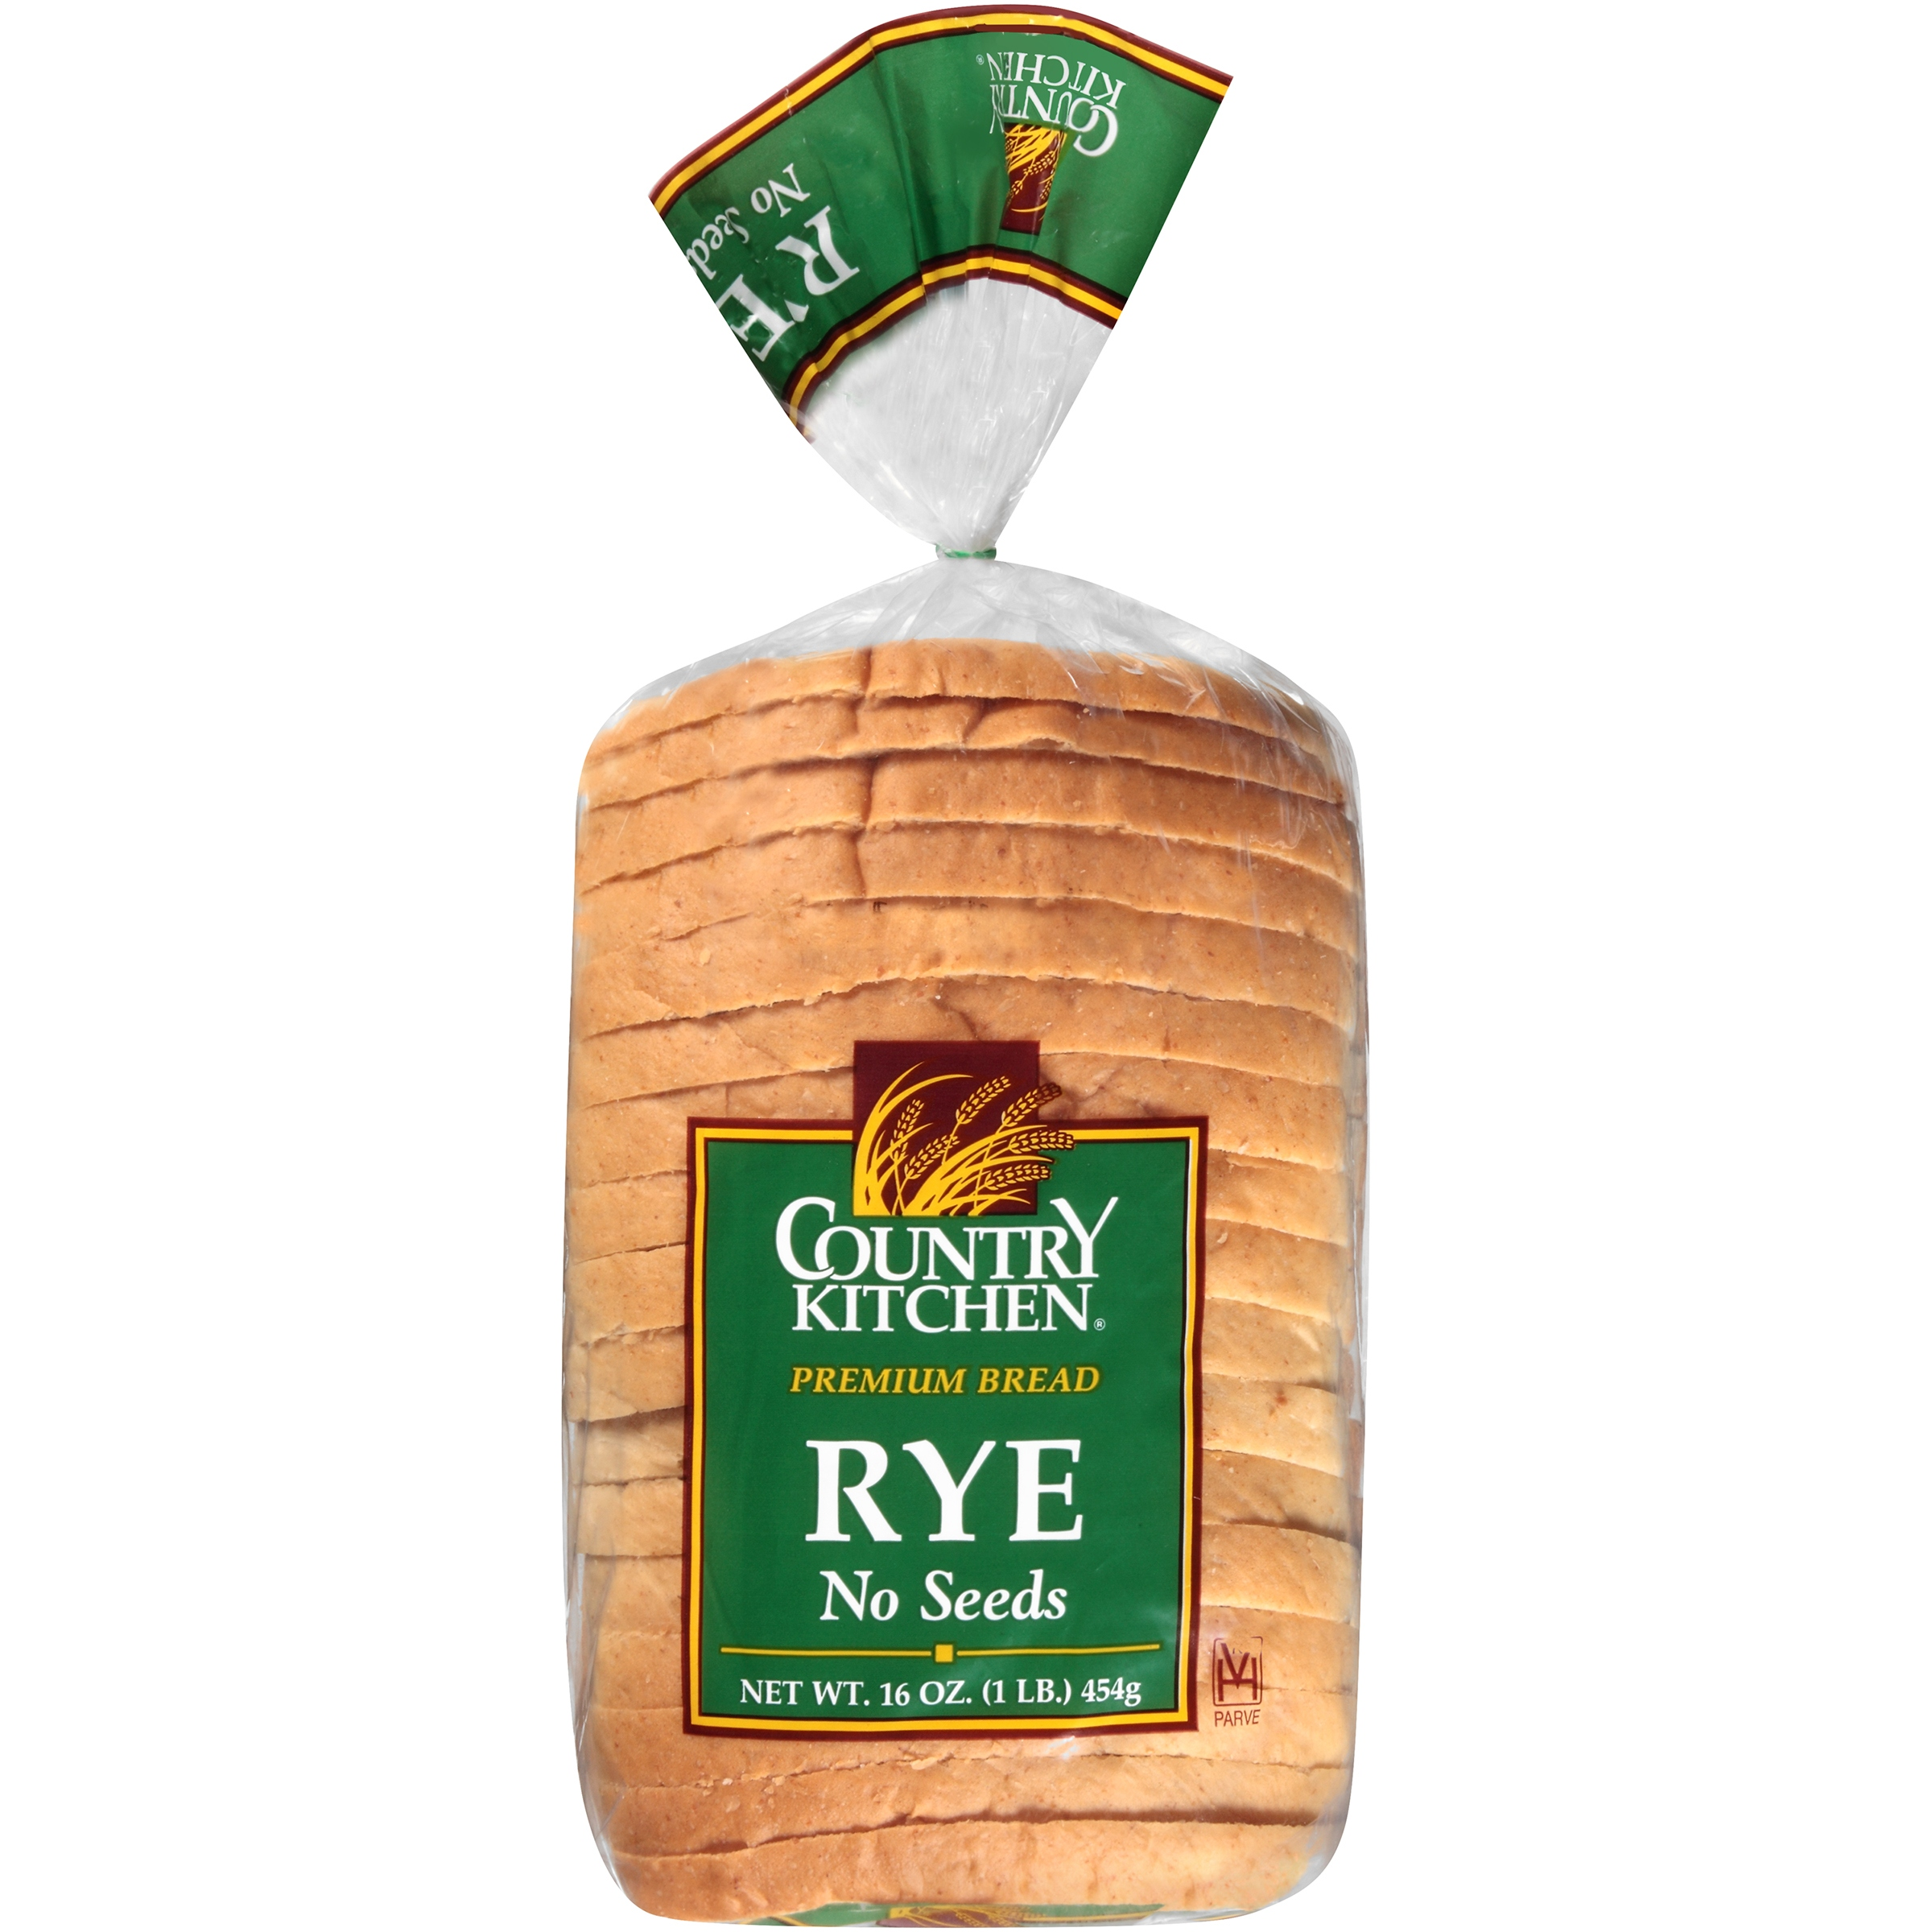 Country Kitchen® Rye No Seeds Bread 16 oz. Loaf